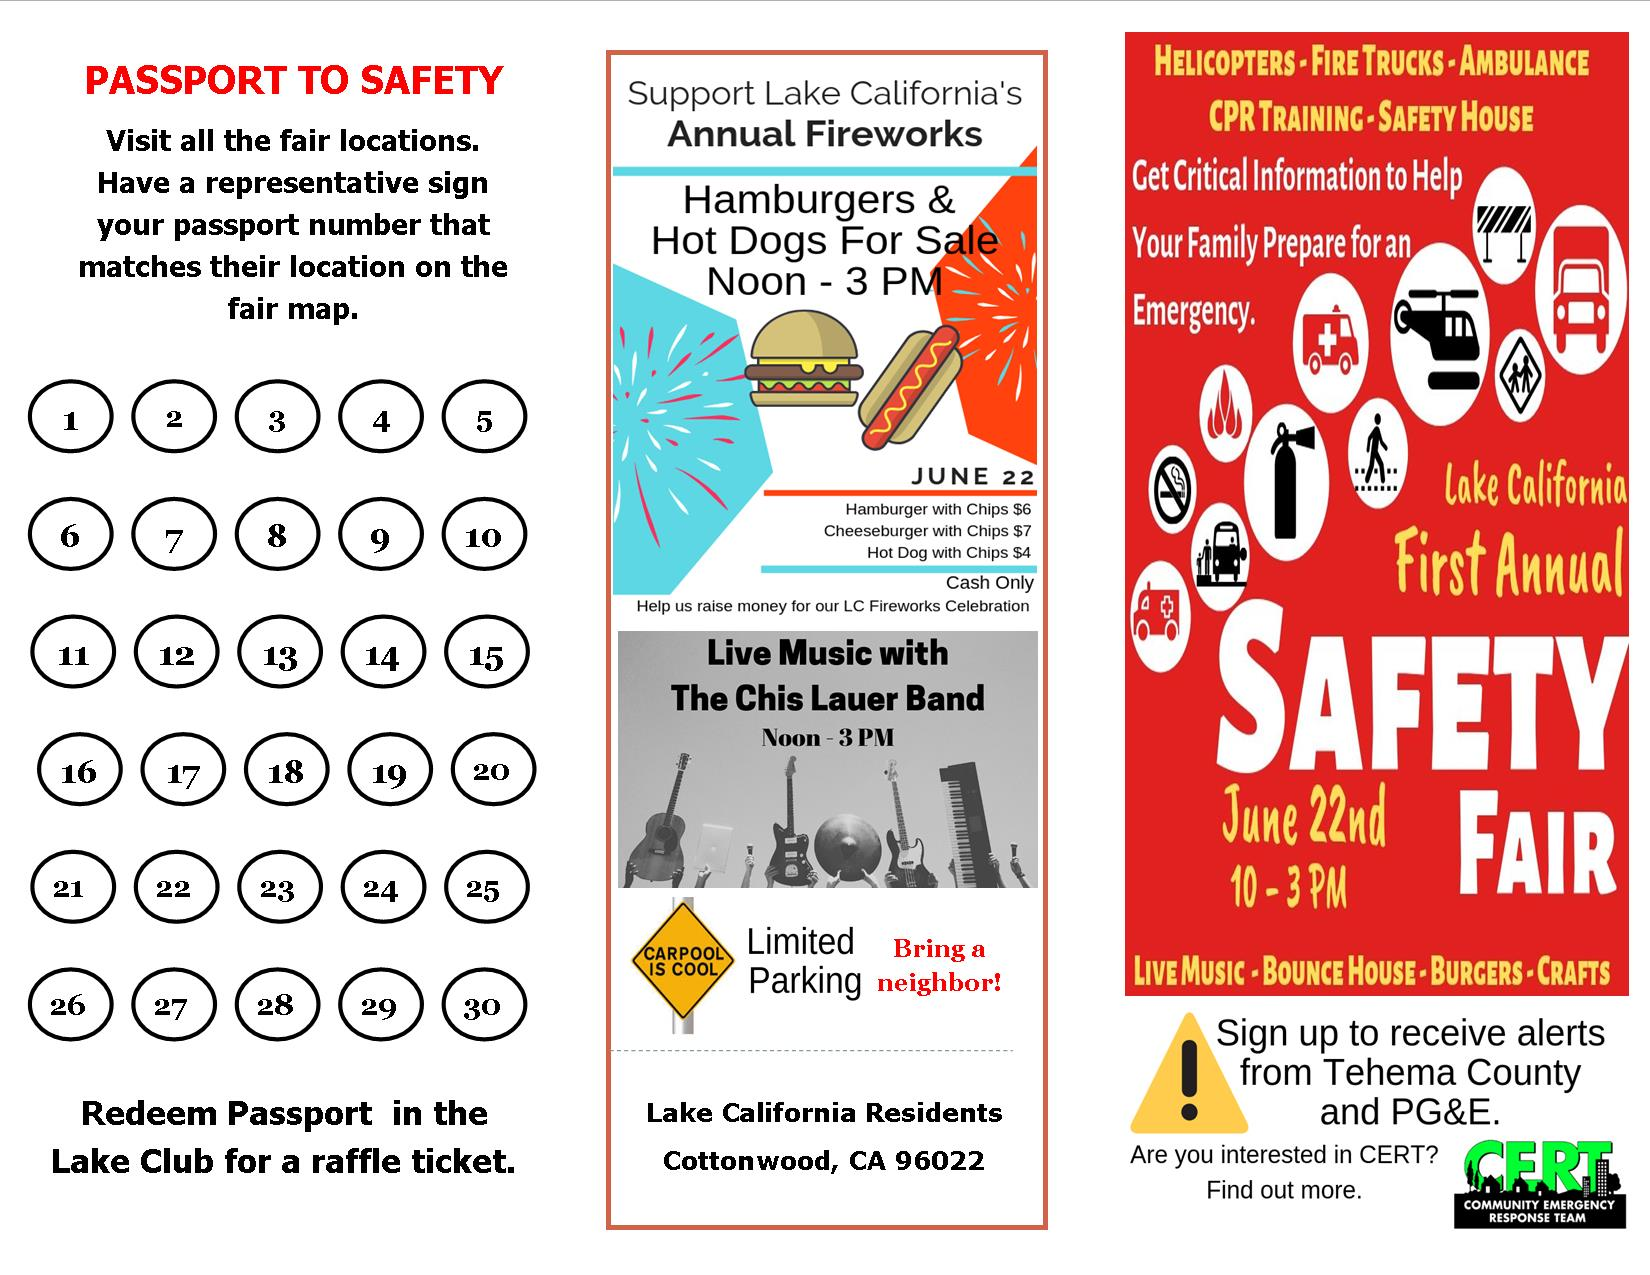 Safety Fair FlyerR1 mail.jpg